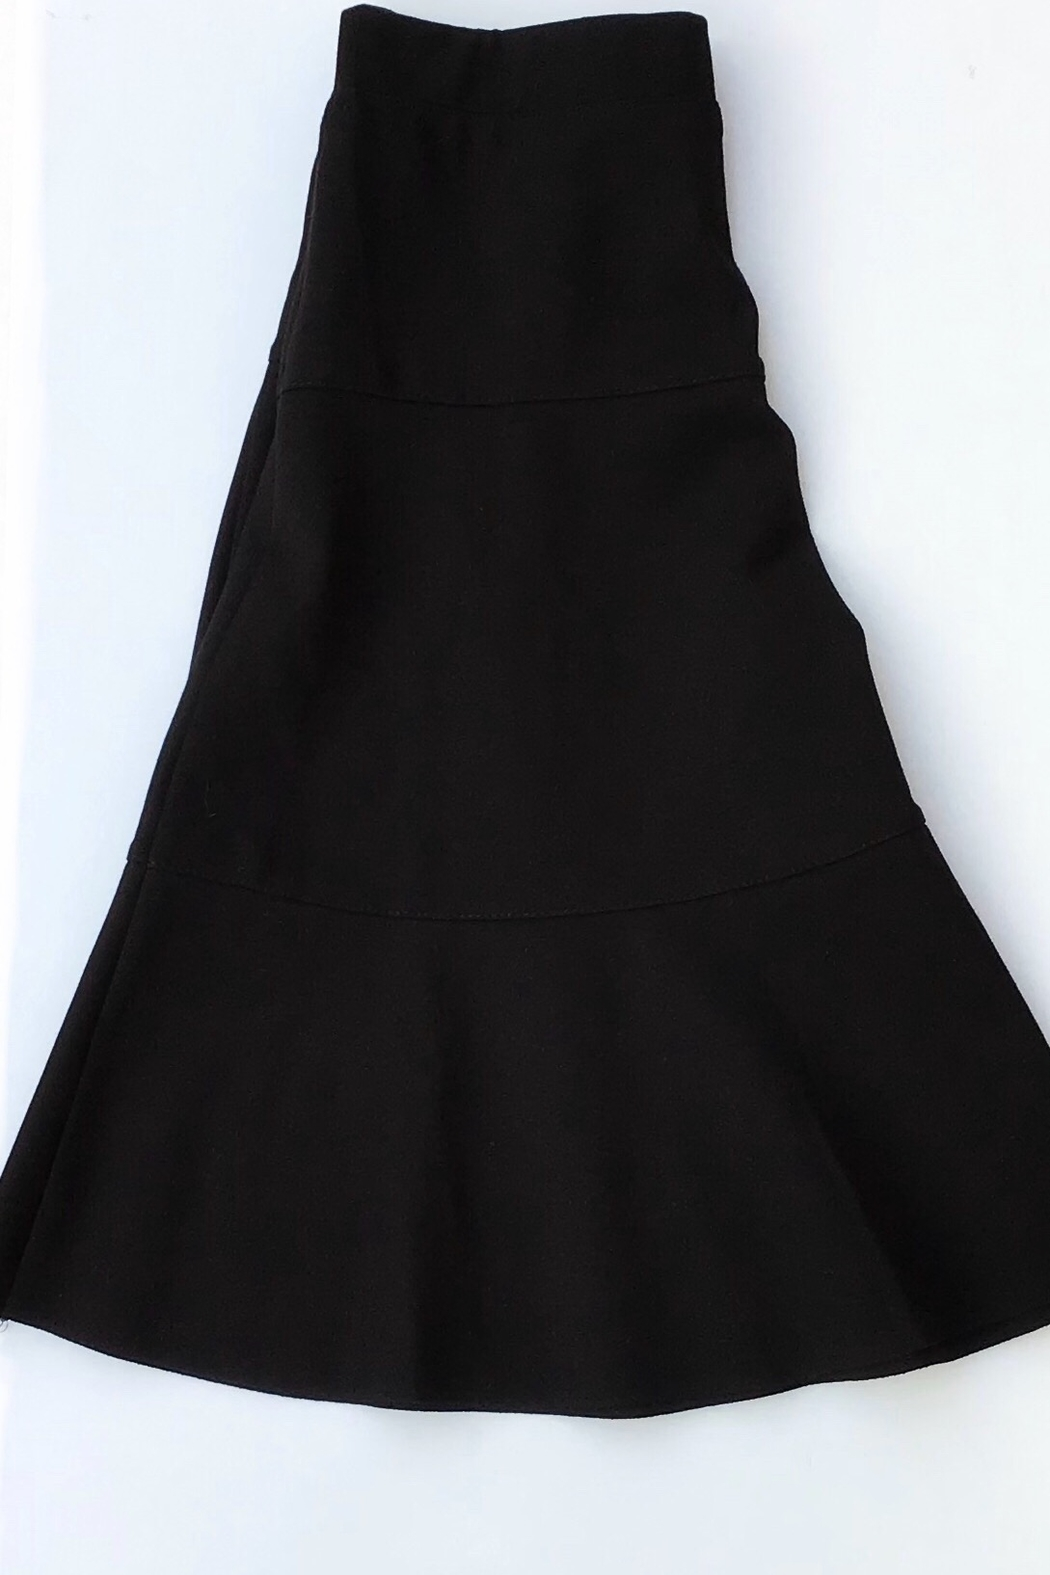 Meli by FAME TIER PONTE SKIRT 29 INCH - Front Cropped Image